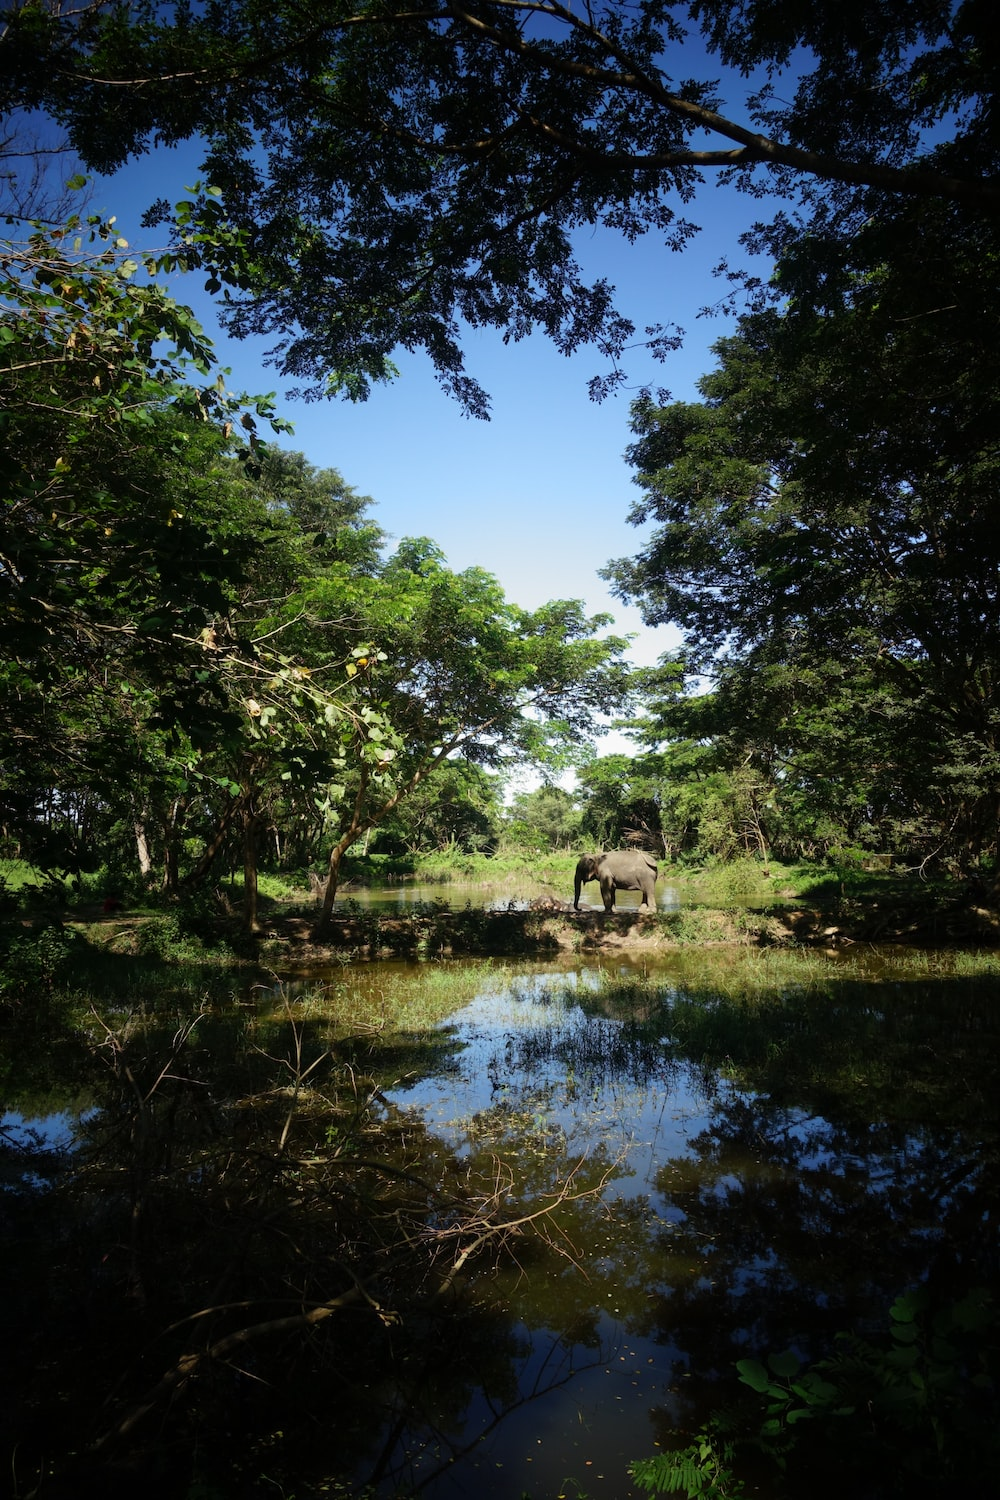 elephant near body of water